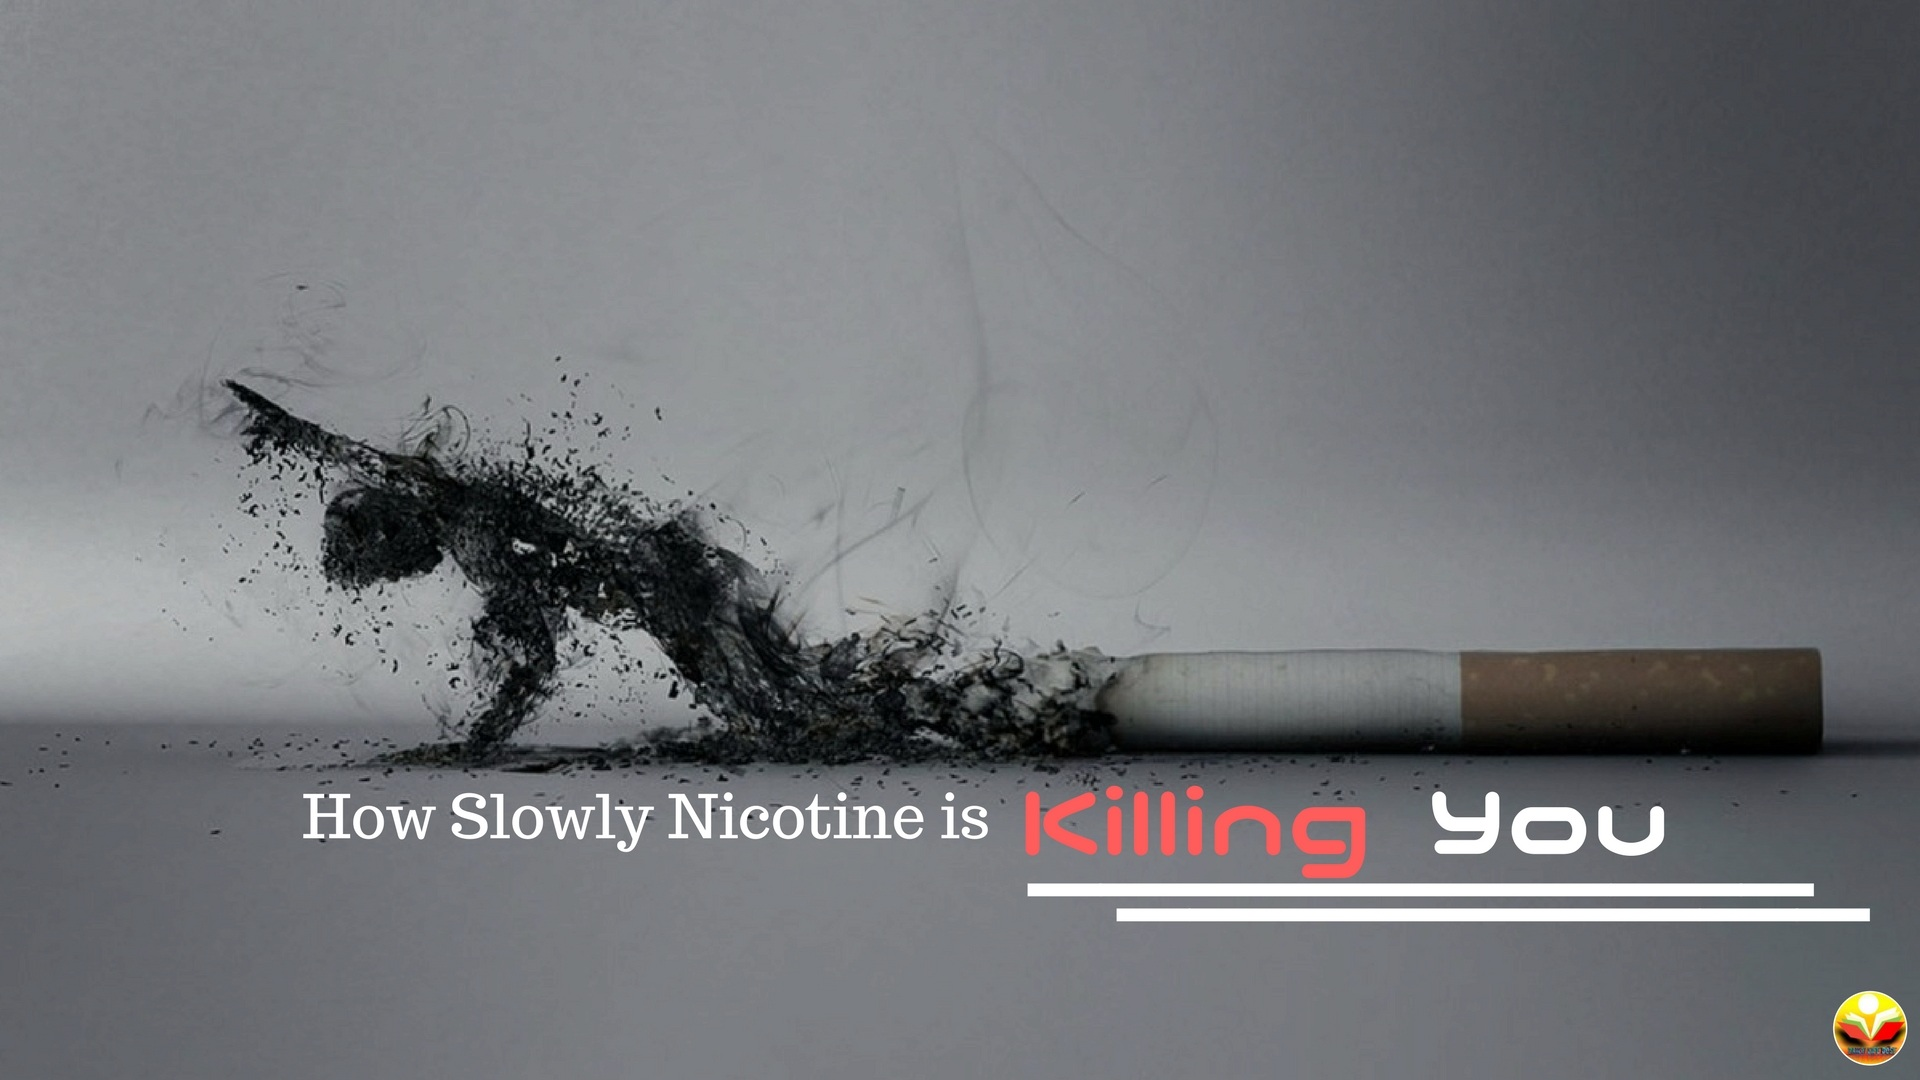 How Long Does Nicotine Stay In Your System - Daily Life Dose